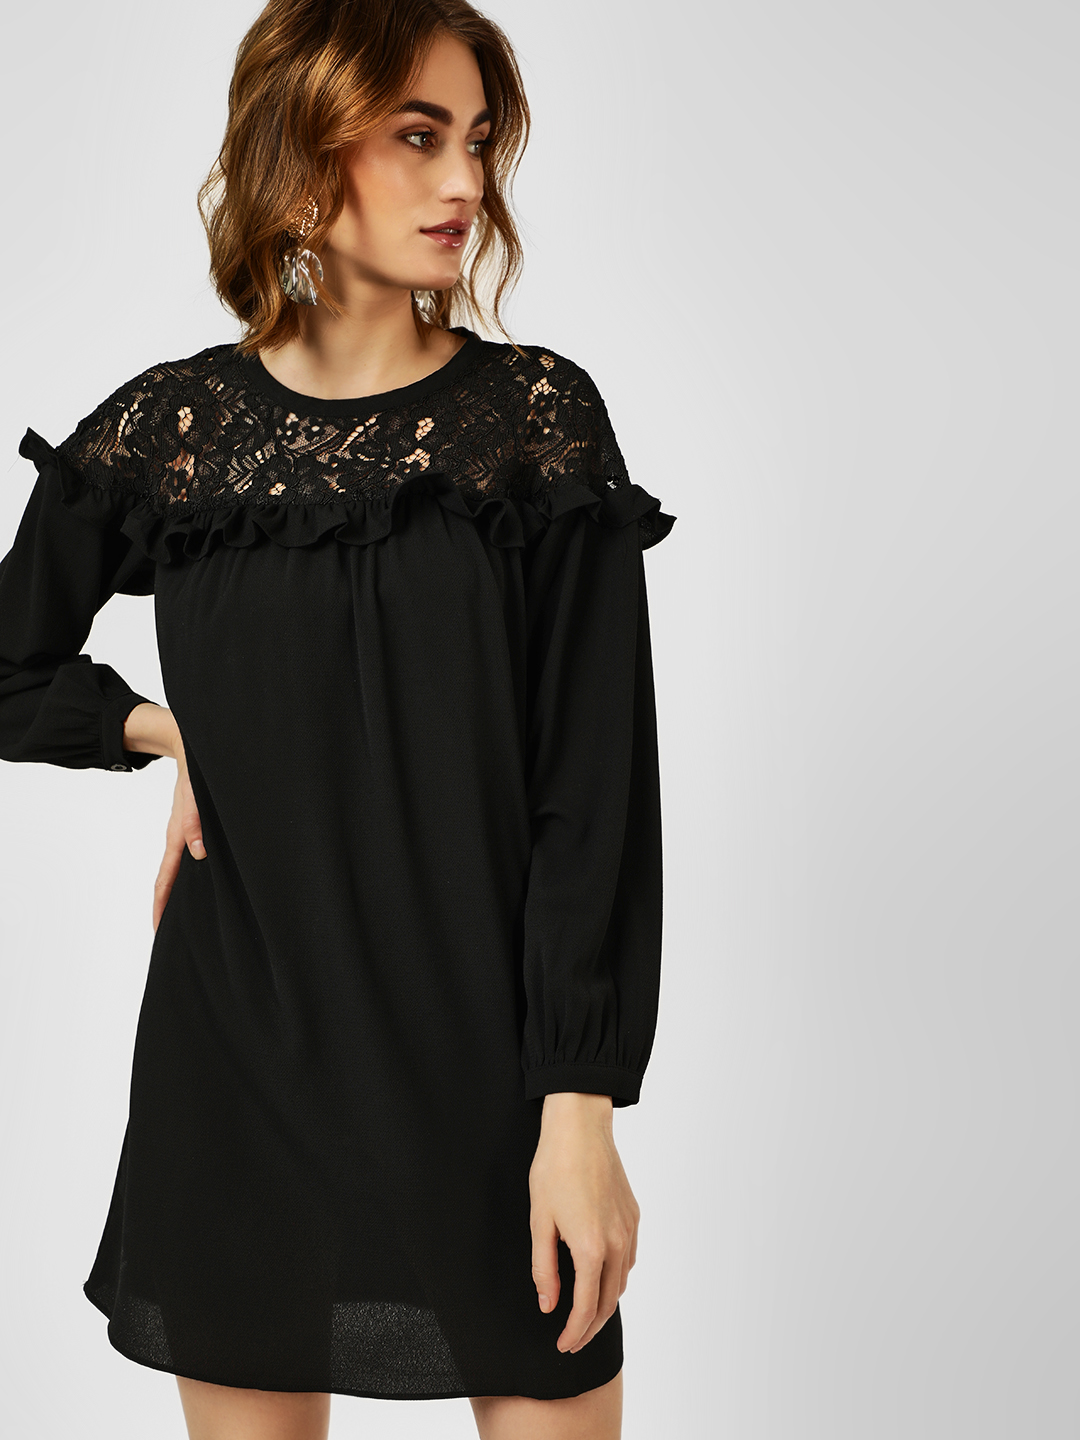 All Good Things Black Lace Insert Tunic Top 1